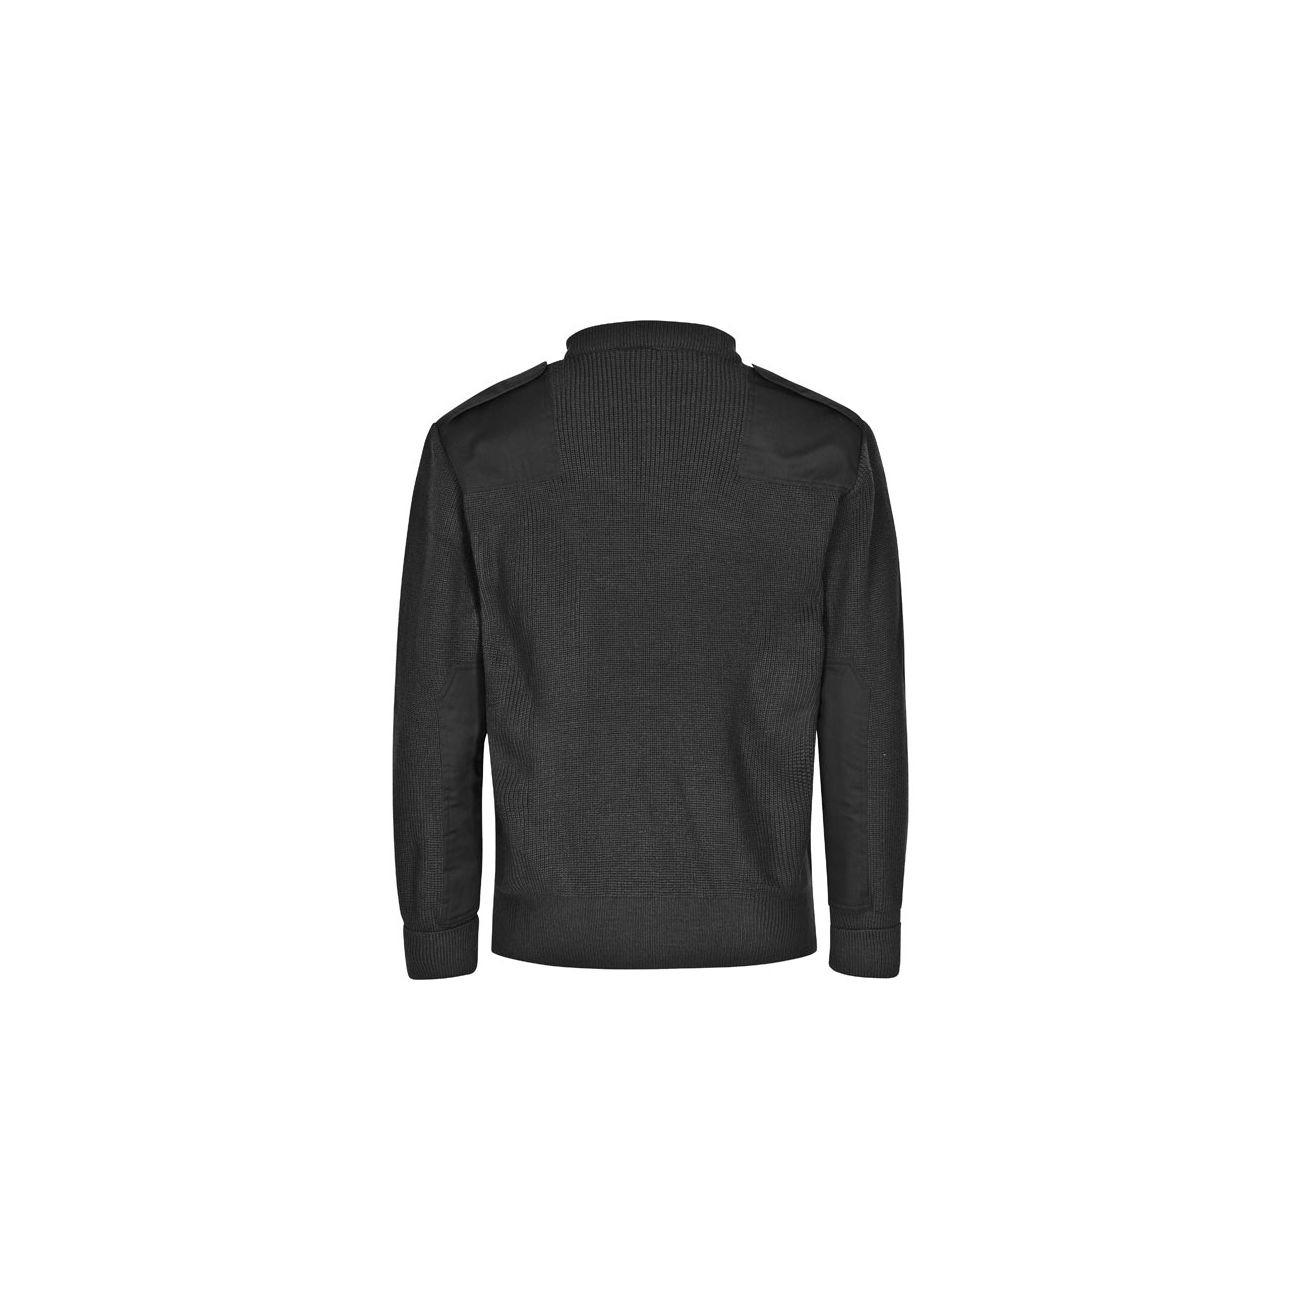 Mil-Tec Pullover BW-Style schwarz 1